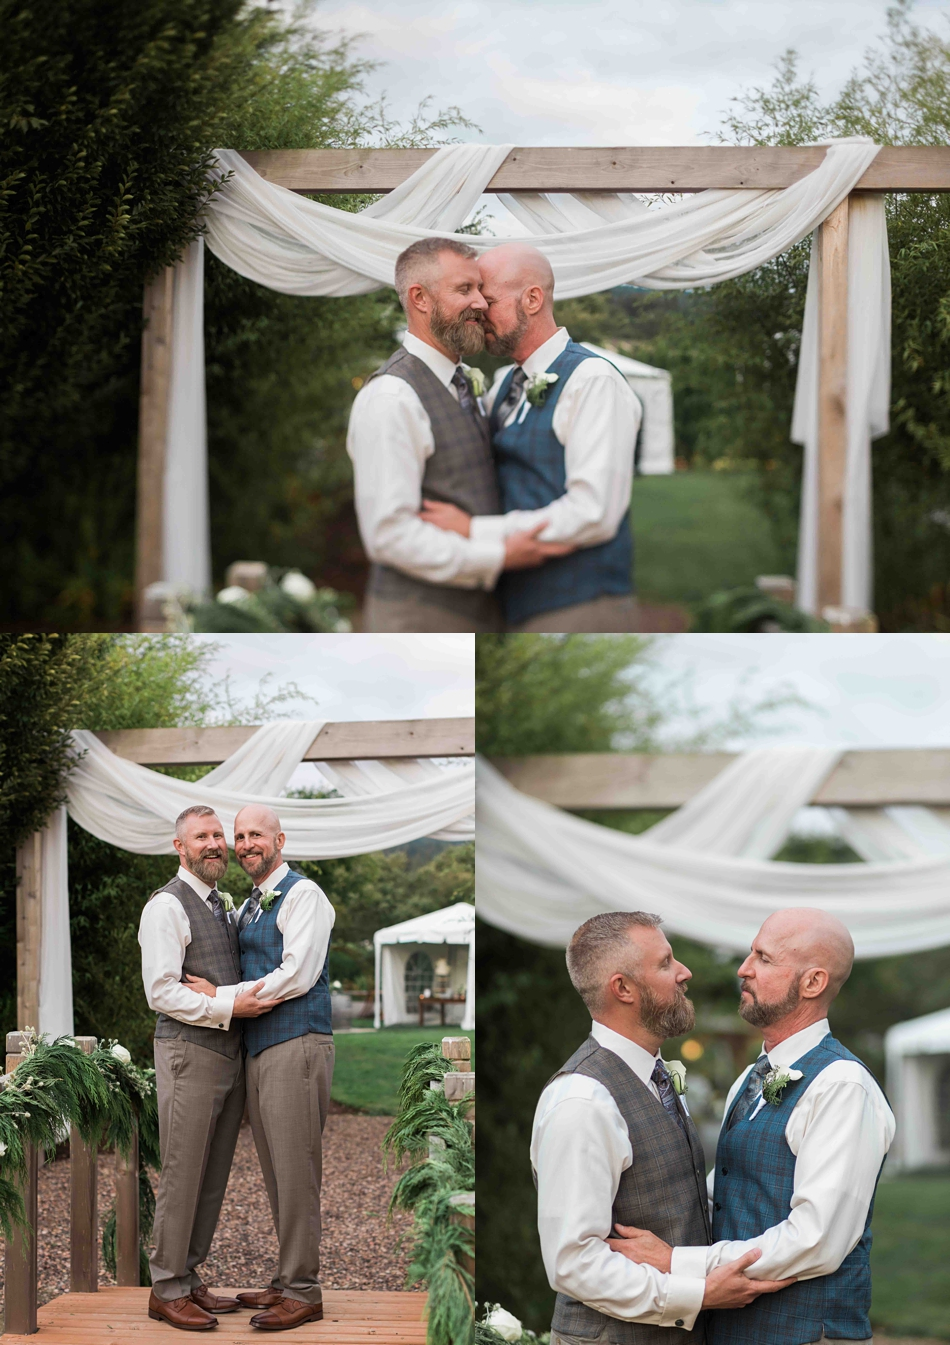 Happiness together at Falling Water Gardens in Monroe. Photographs by Joanna Monger Photography, Award Winning Snohomish Wedding Photographer.